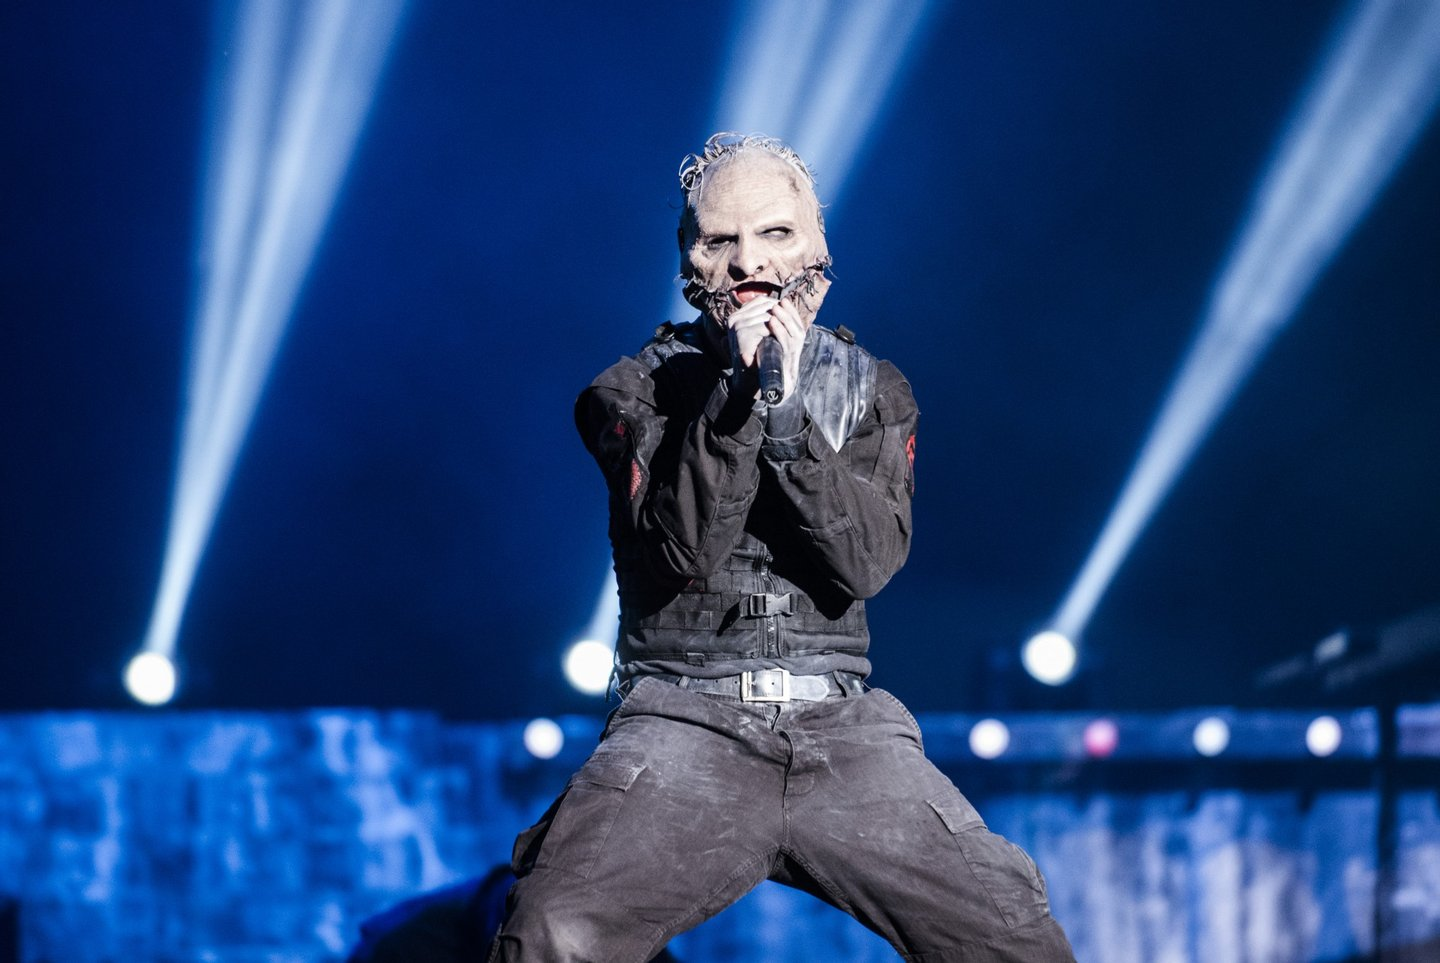 RIO DE JANEIRO, BRAZIL - SEPTEMBER 25: Corey Taylor from Slipknot performs at 2015 Rock in Rio on September 25, 2015 in Rio de Janeiro, Brazil. (Photo by Raphael Dias/Getty Images) *** Local Caption *** Corey Taylor